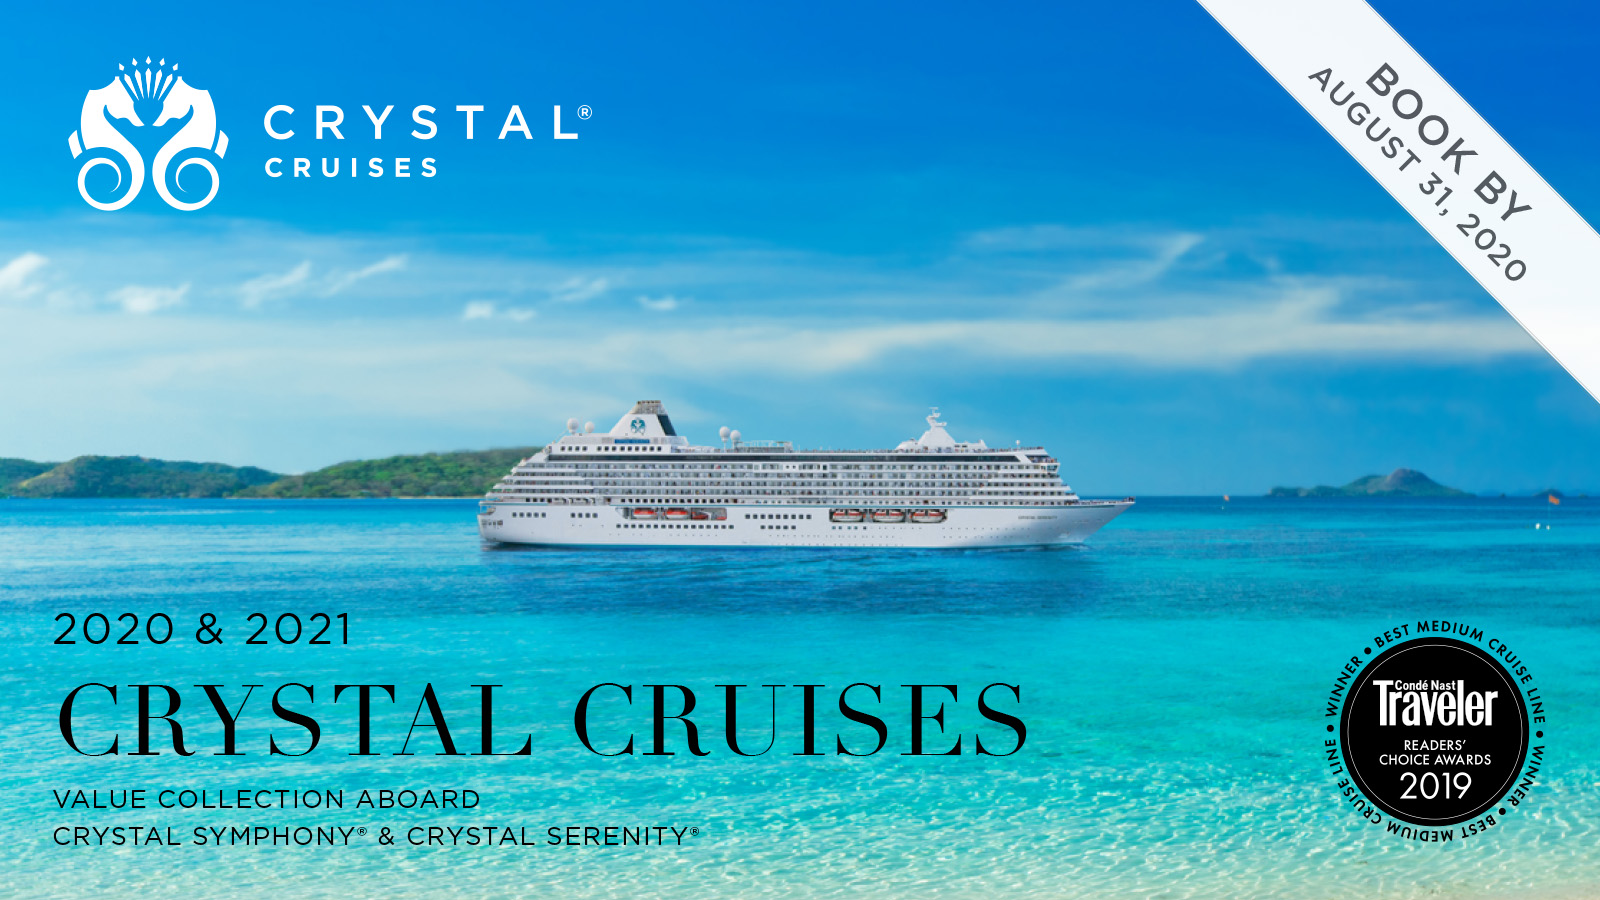 2020 & 2021 CRYSTAL CRUISES VALUE COLLECTION ABOARD CRYSTAL SYMPHONY® & CRYSTAL SERENITY®